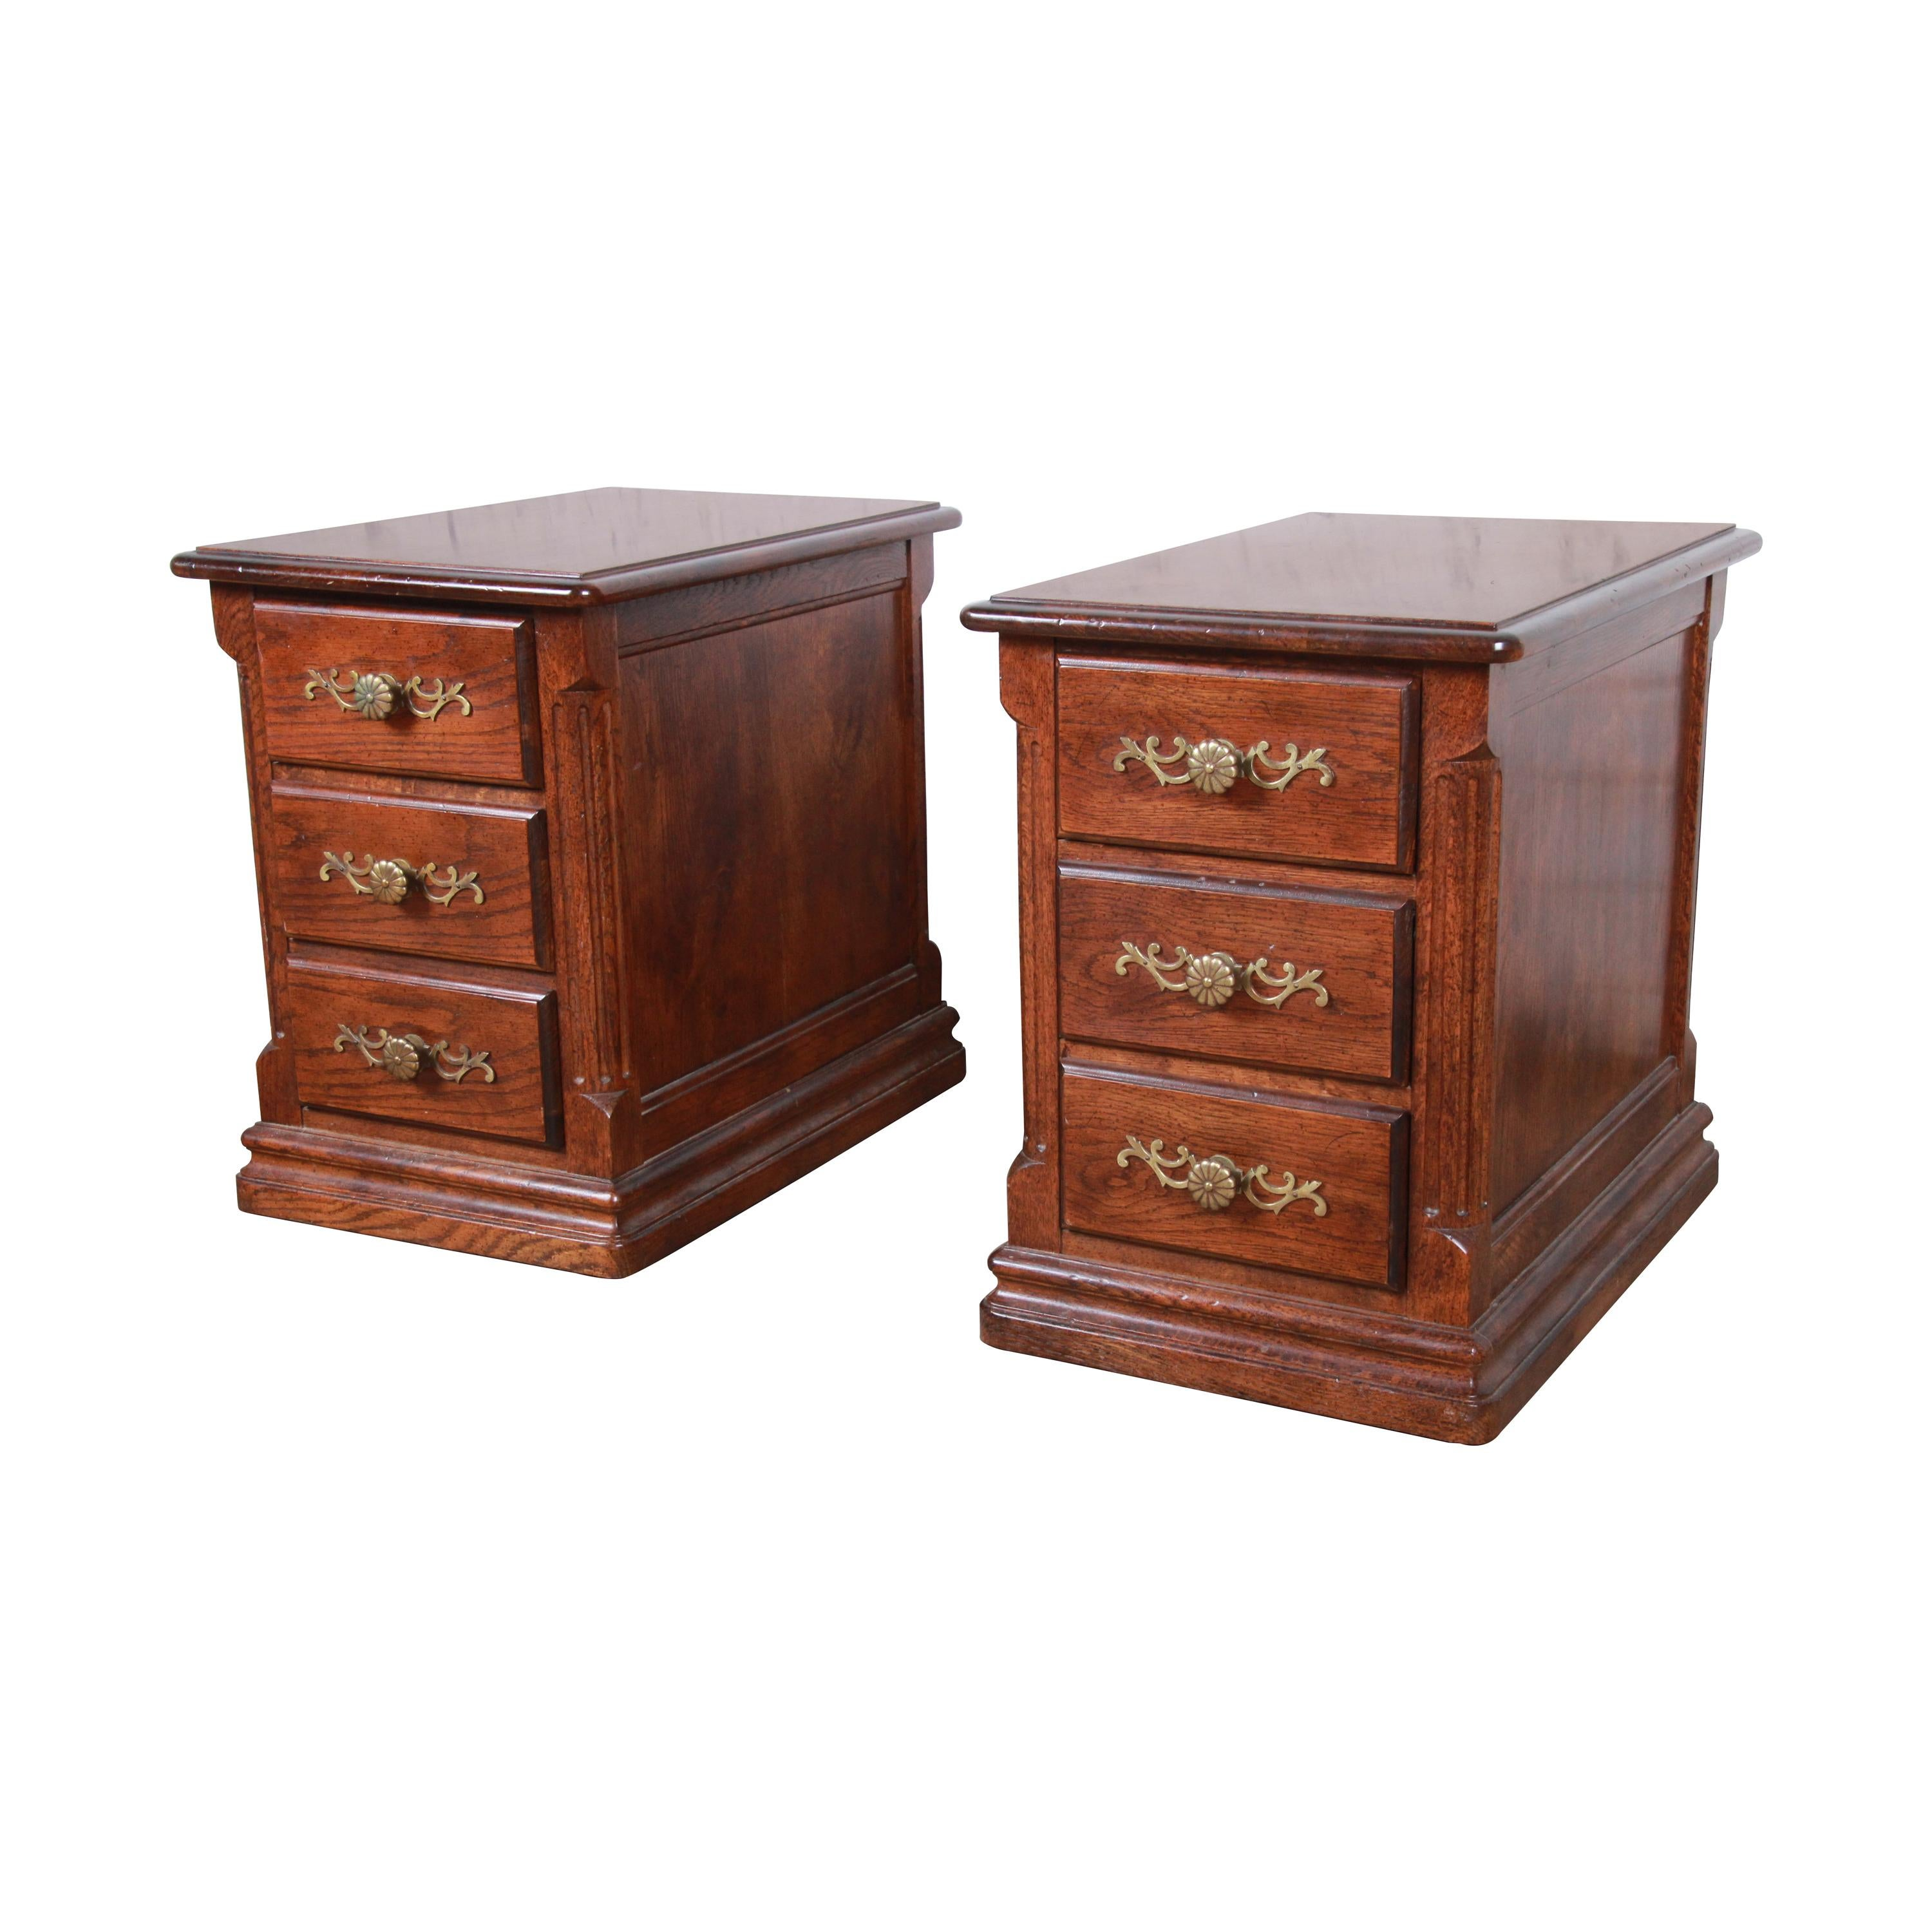 French Country Oak Three-Drawer Nightstands by Hickory